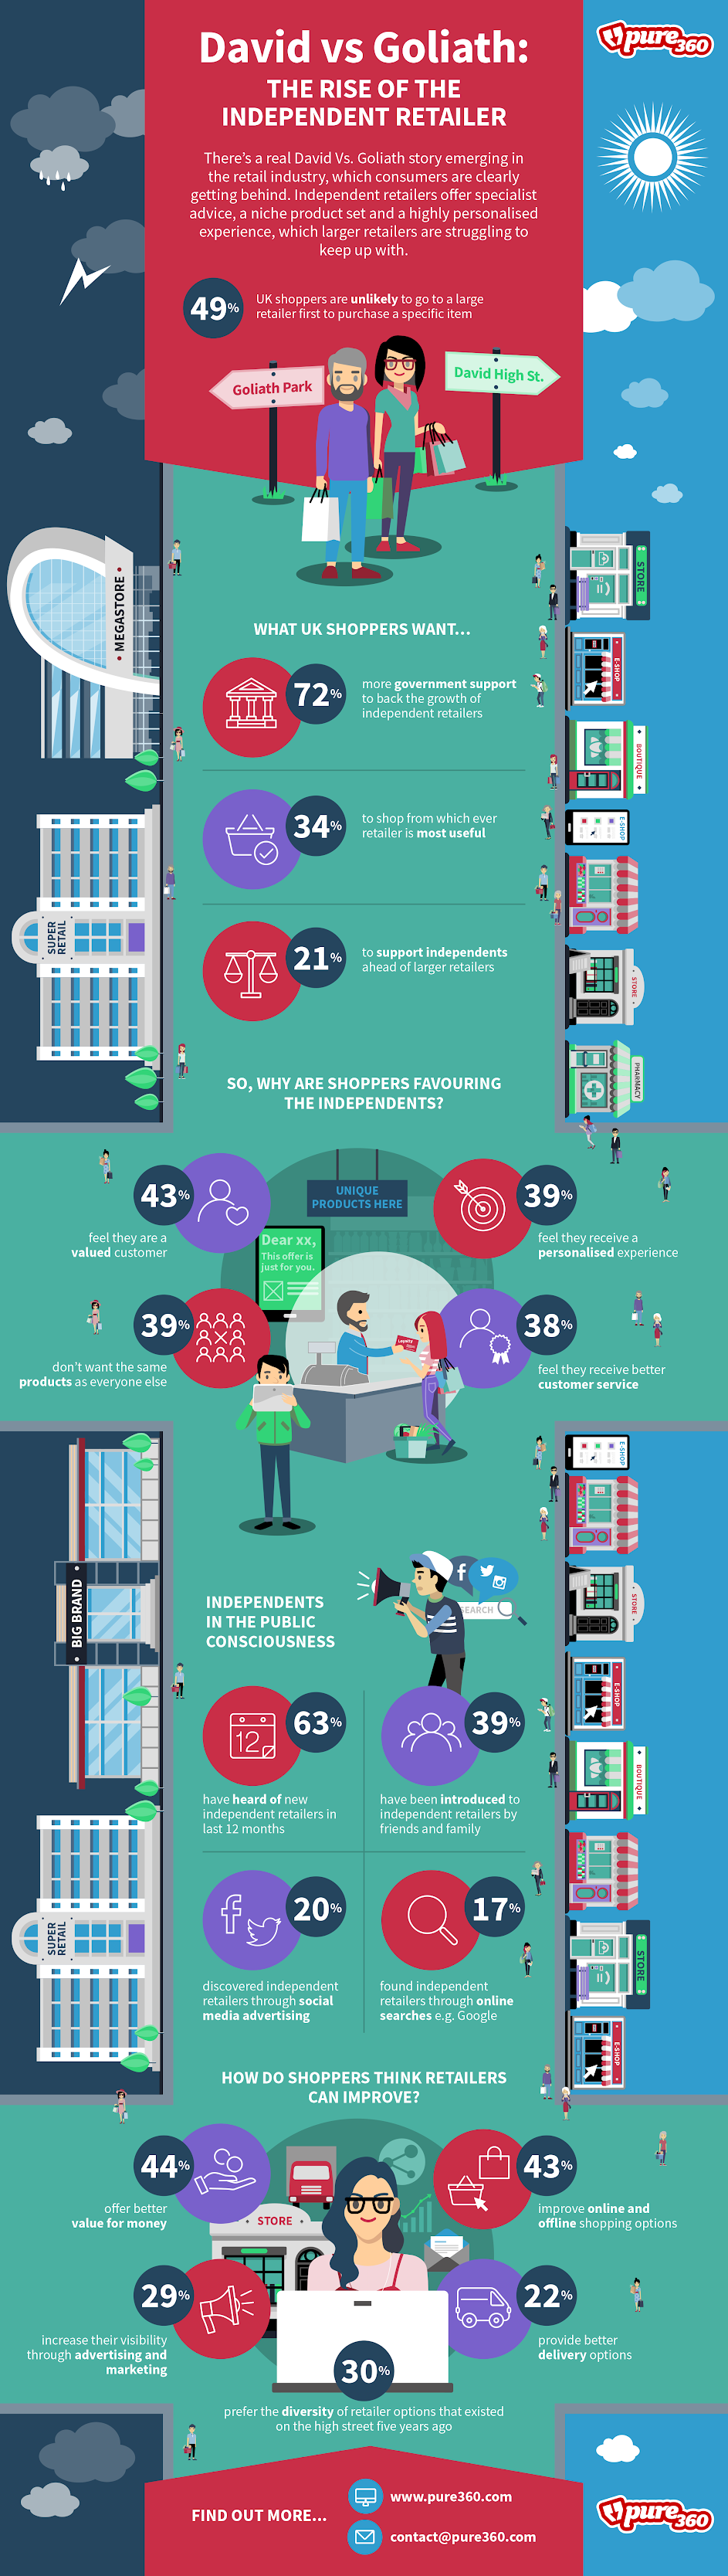 Rise-Of-The-Independent-Retailer-Infographic